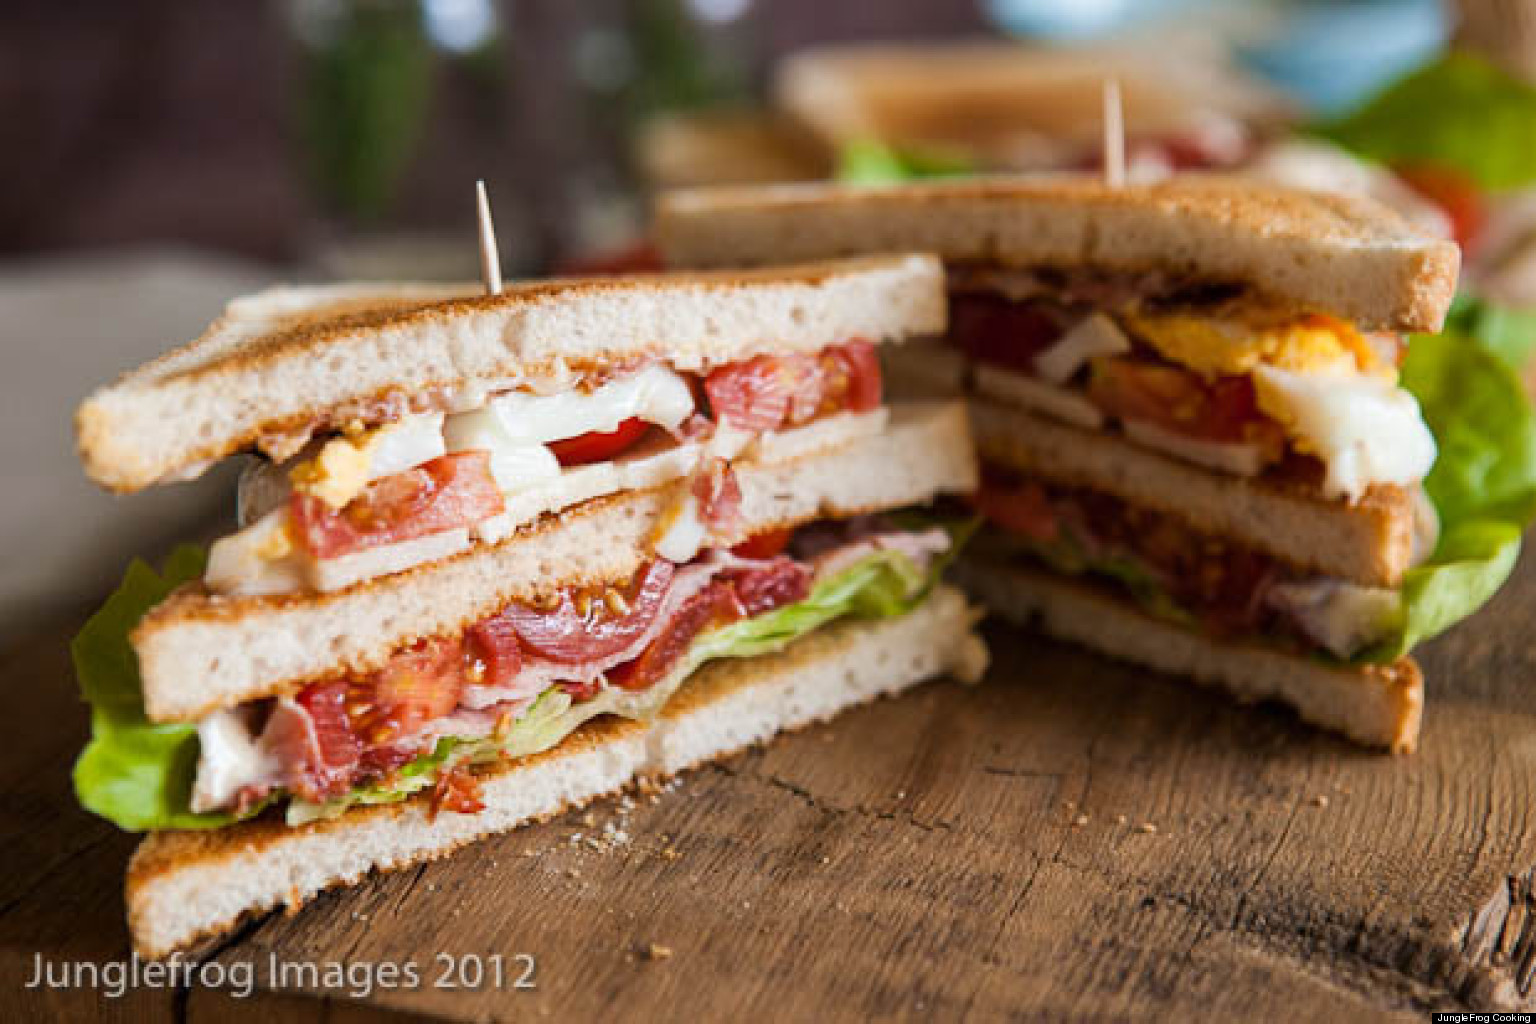 club sandwich classic club sandwich the classic club sandwich classic ...